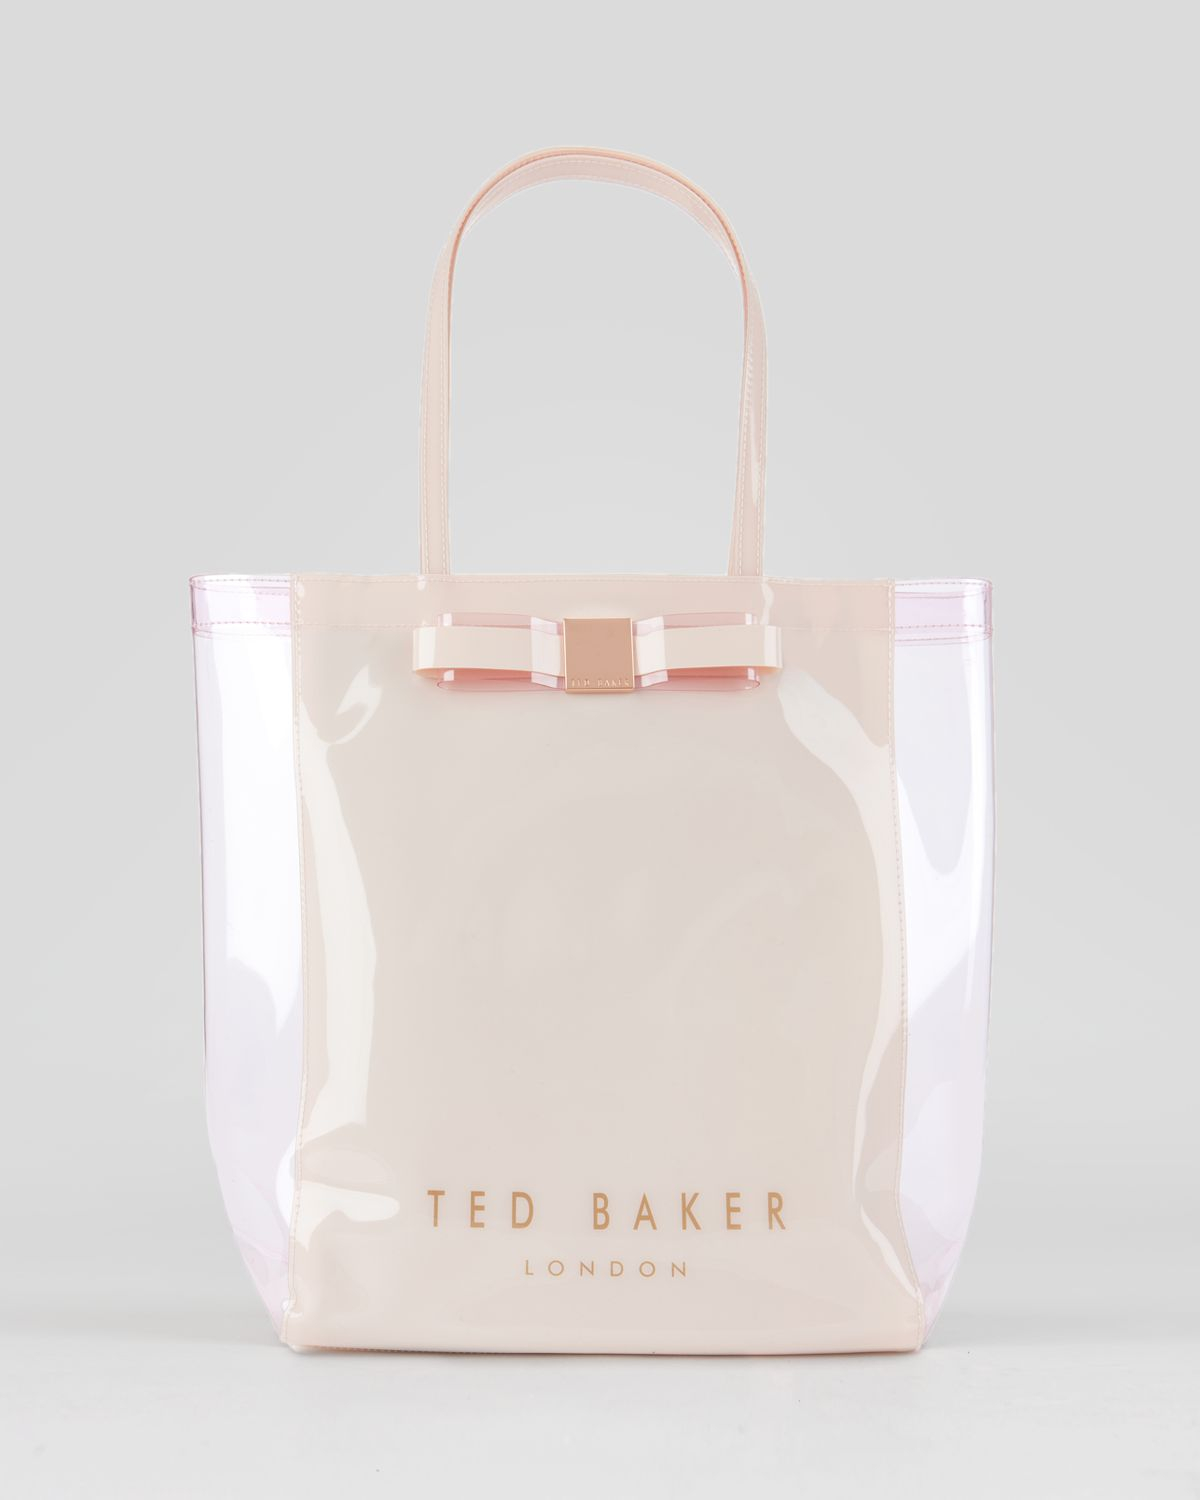 d4dd1a8a036902 Ted Baker Small Icon Tote Bag in Nude Pink